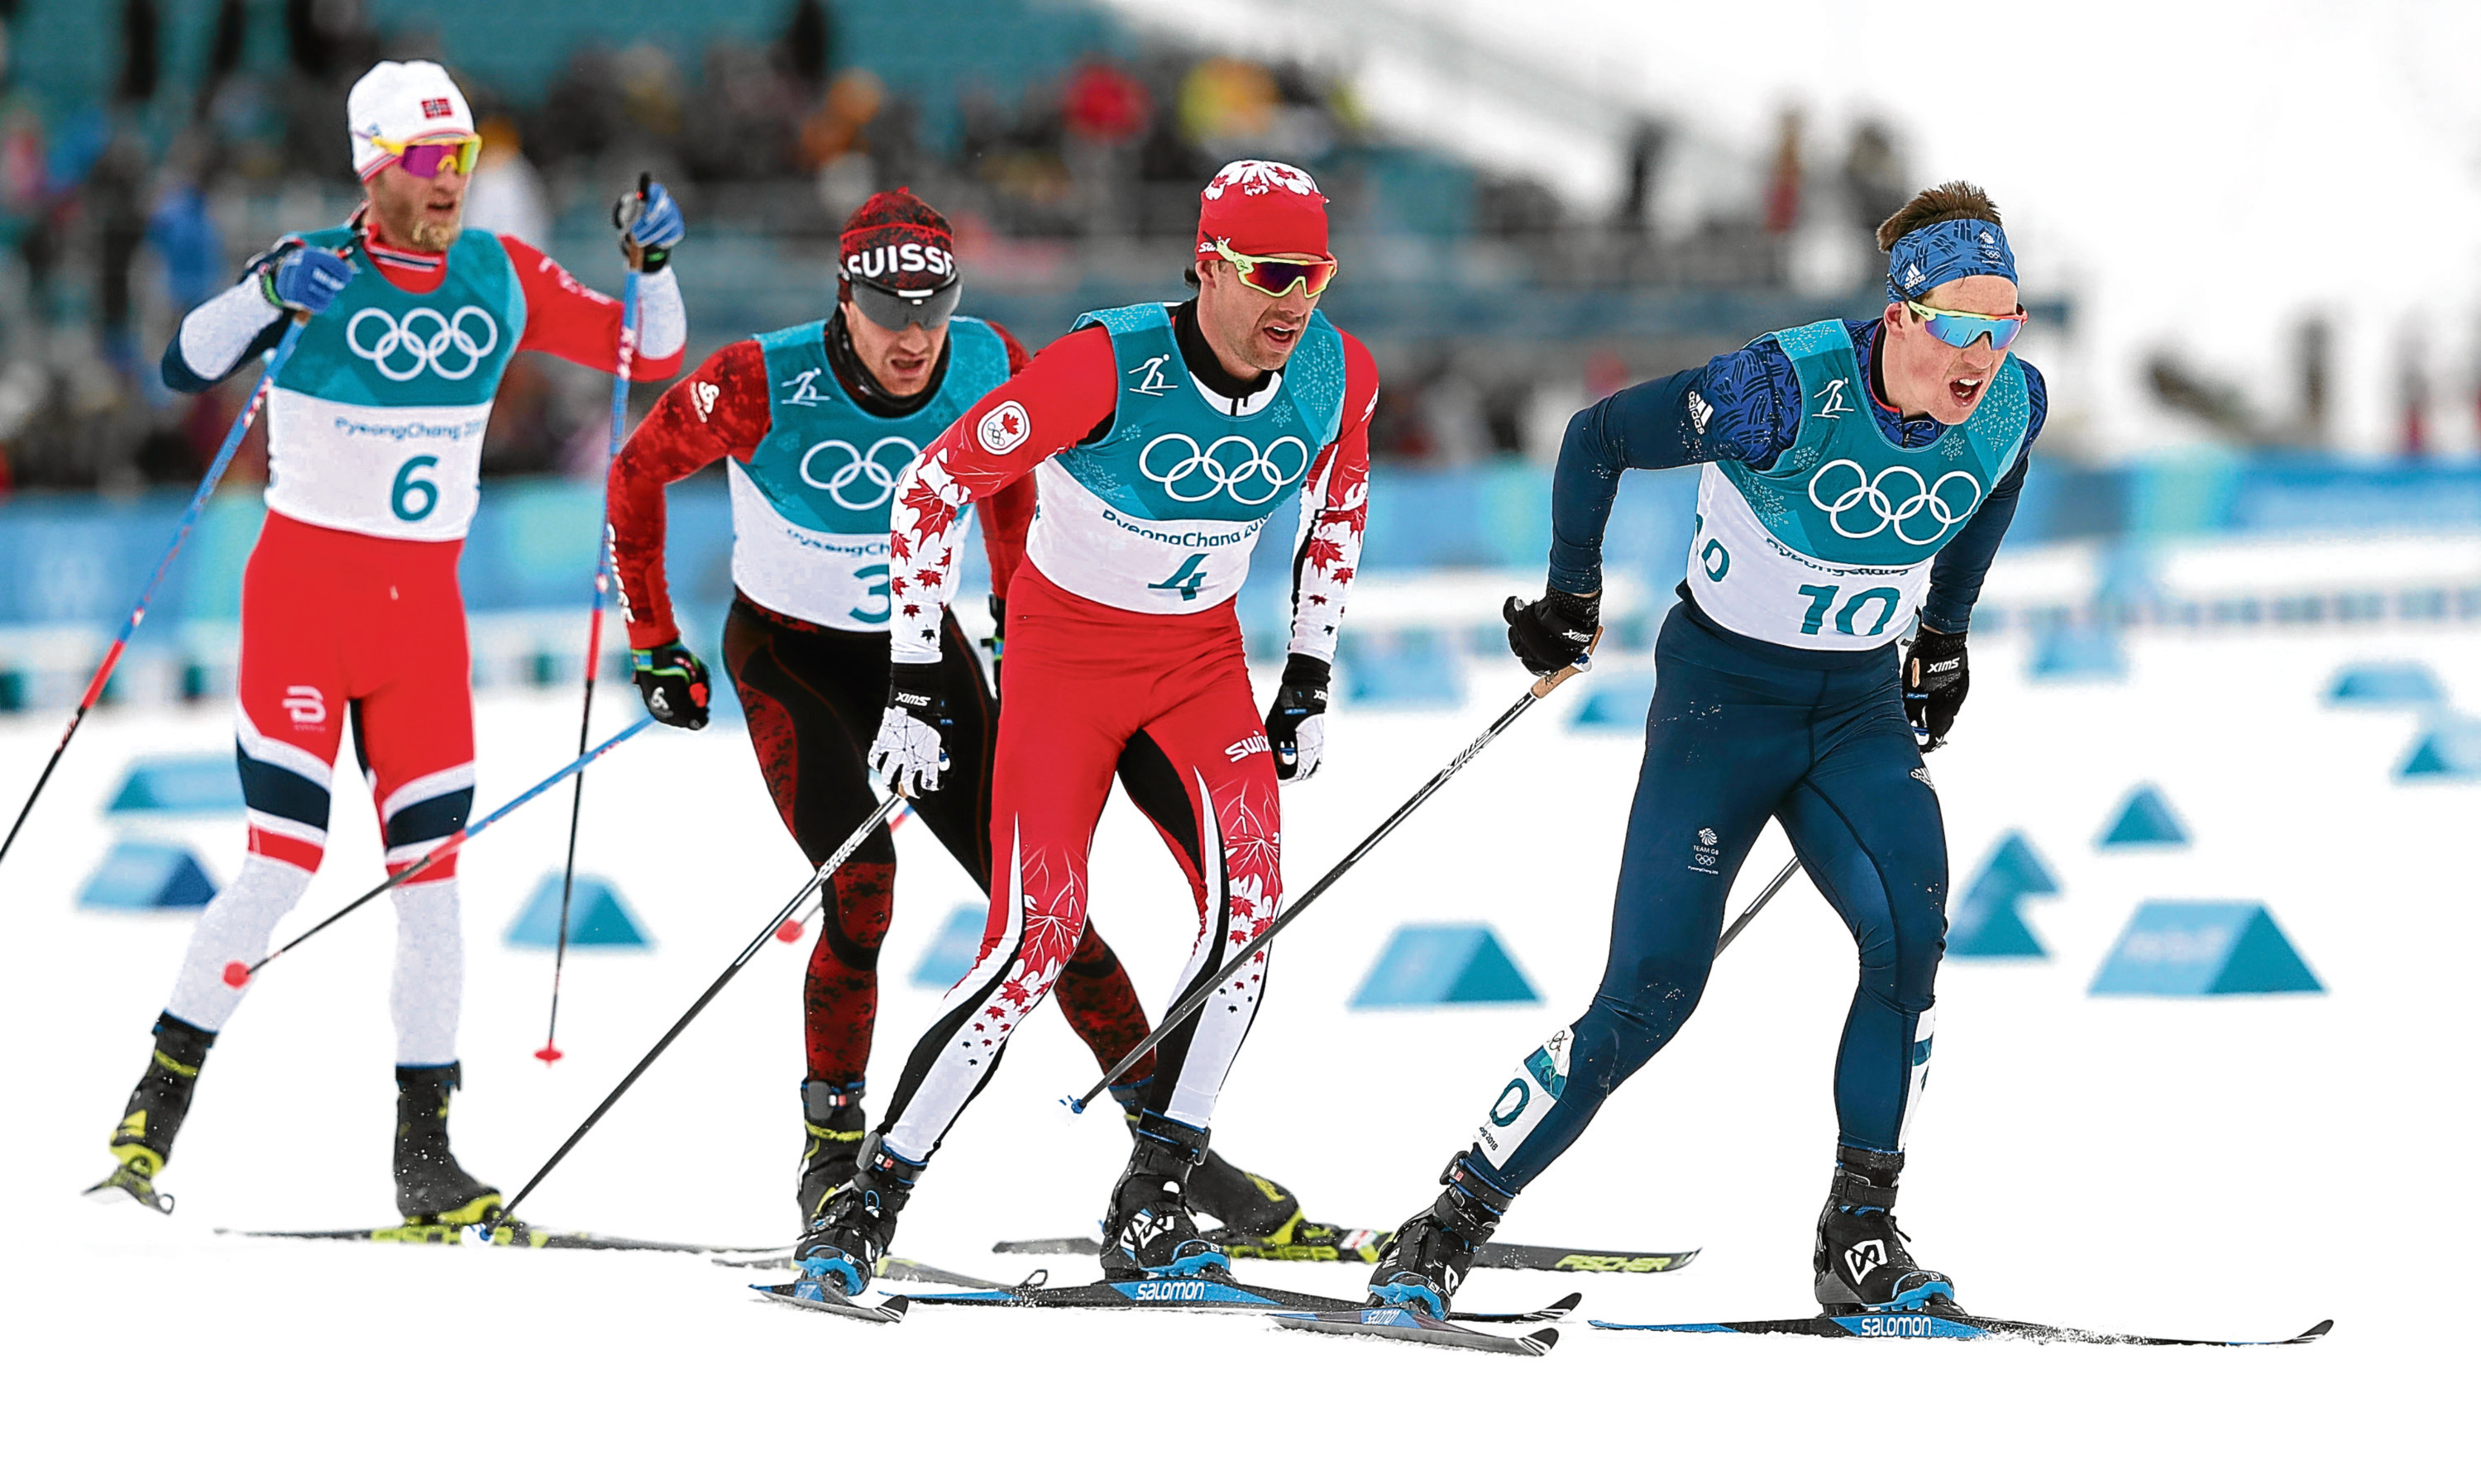 Great Britain's Andrew Musgrave in the Mens 15km + 15km Skiathlon at the Alpensia Cross Country Skiing Centre during day two of the PyeongChang 2018 Winter Olympic Games in South Korea. PRESS ASSOCIATION Photo. Picture date: Sunday February 11, 2018. See PA story OLYMPICS Cross Country. Photo credit should read: David Davies/PA Wire. RESTRICTIONS: Editorial use only. No commercial use.